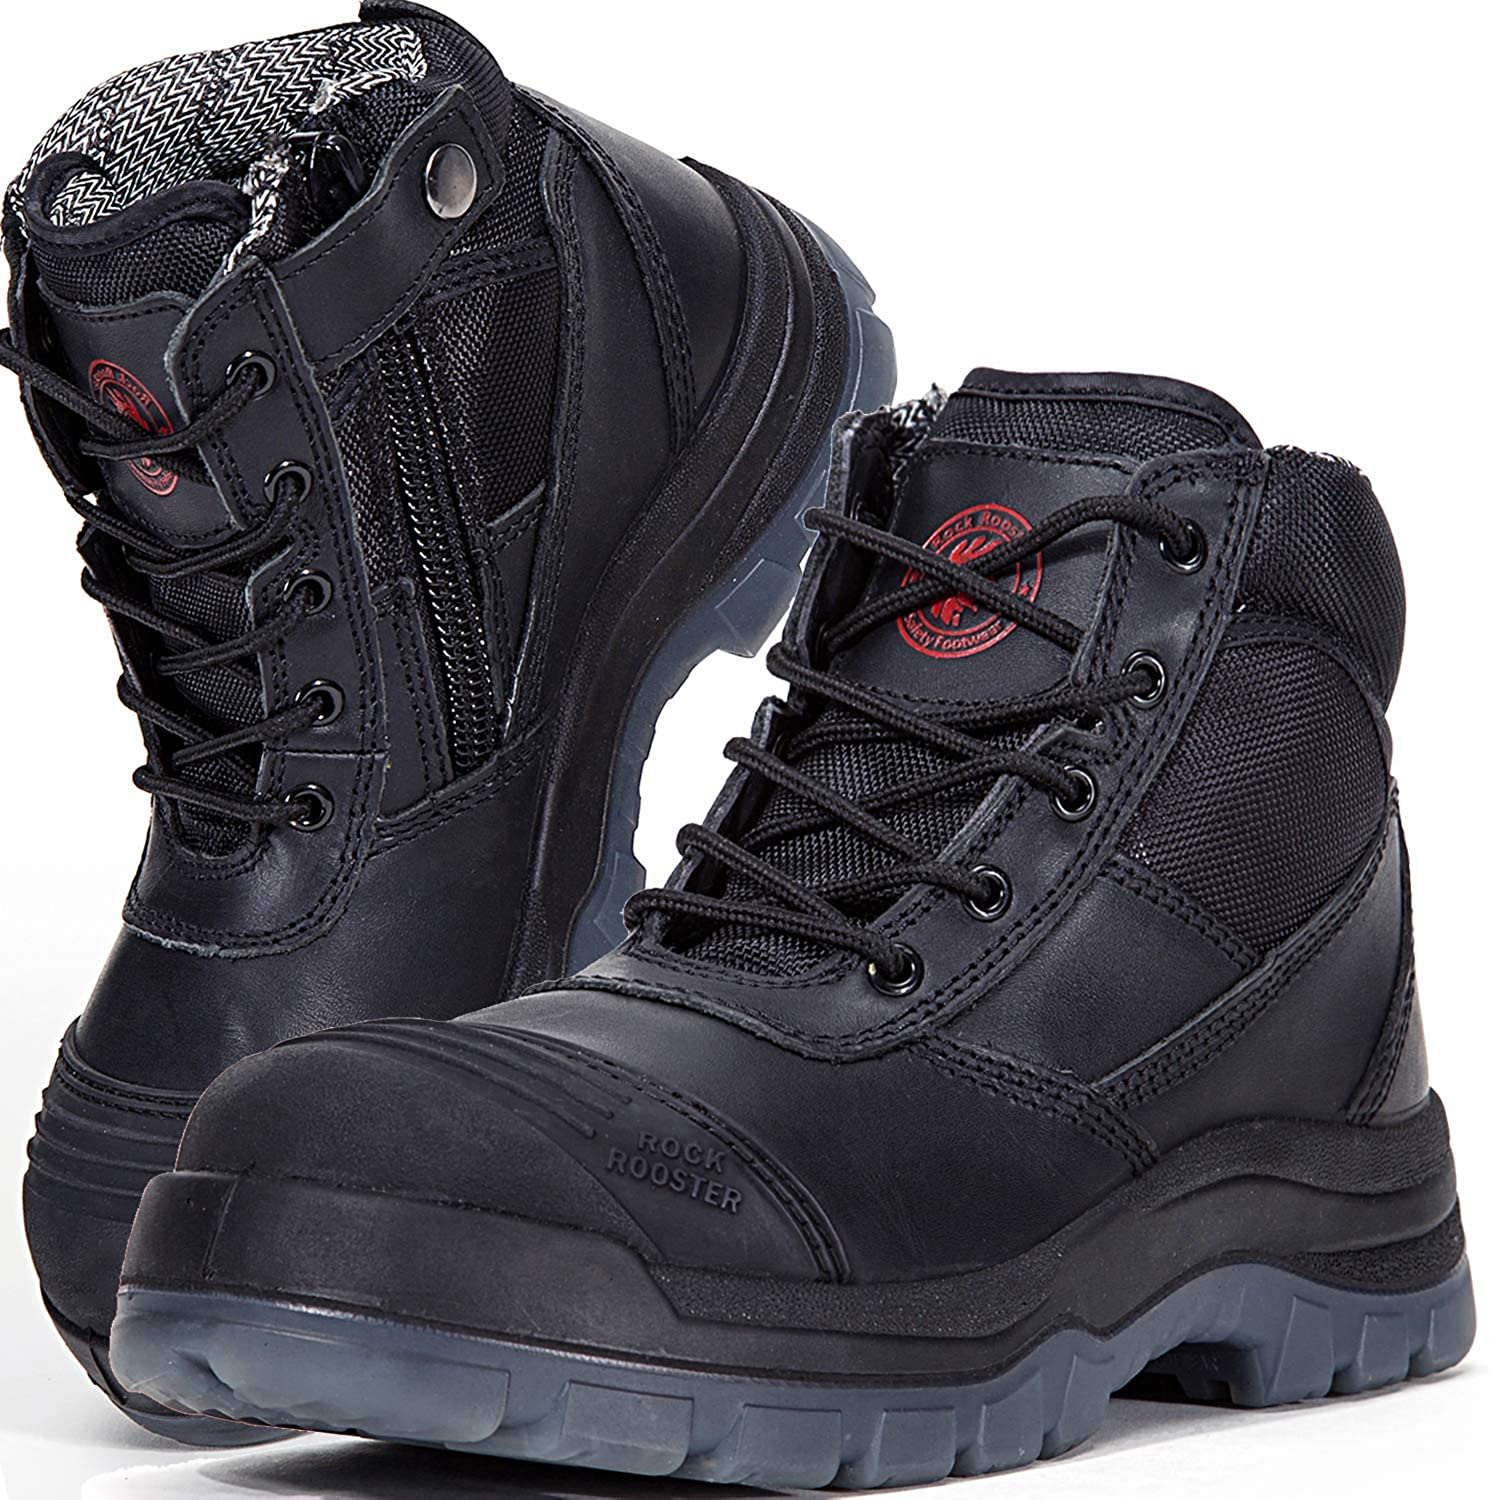 Men/'s Leather Safety Shoes Steel Toe Breathable Work Boots 2 Colors